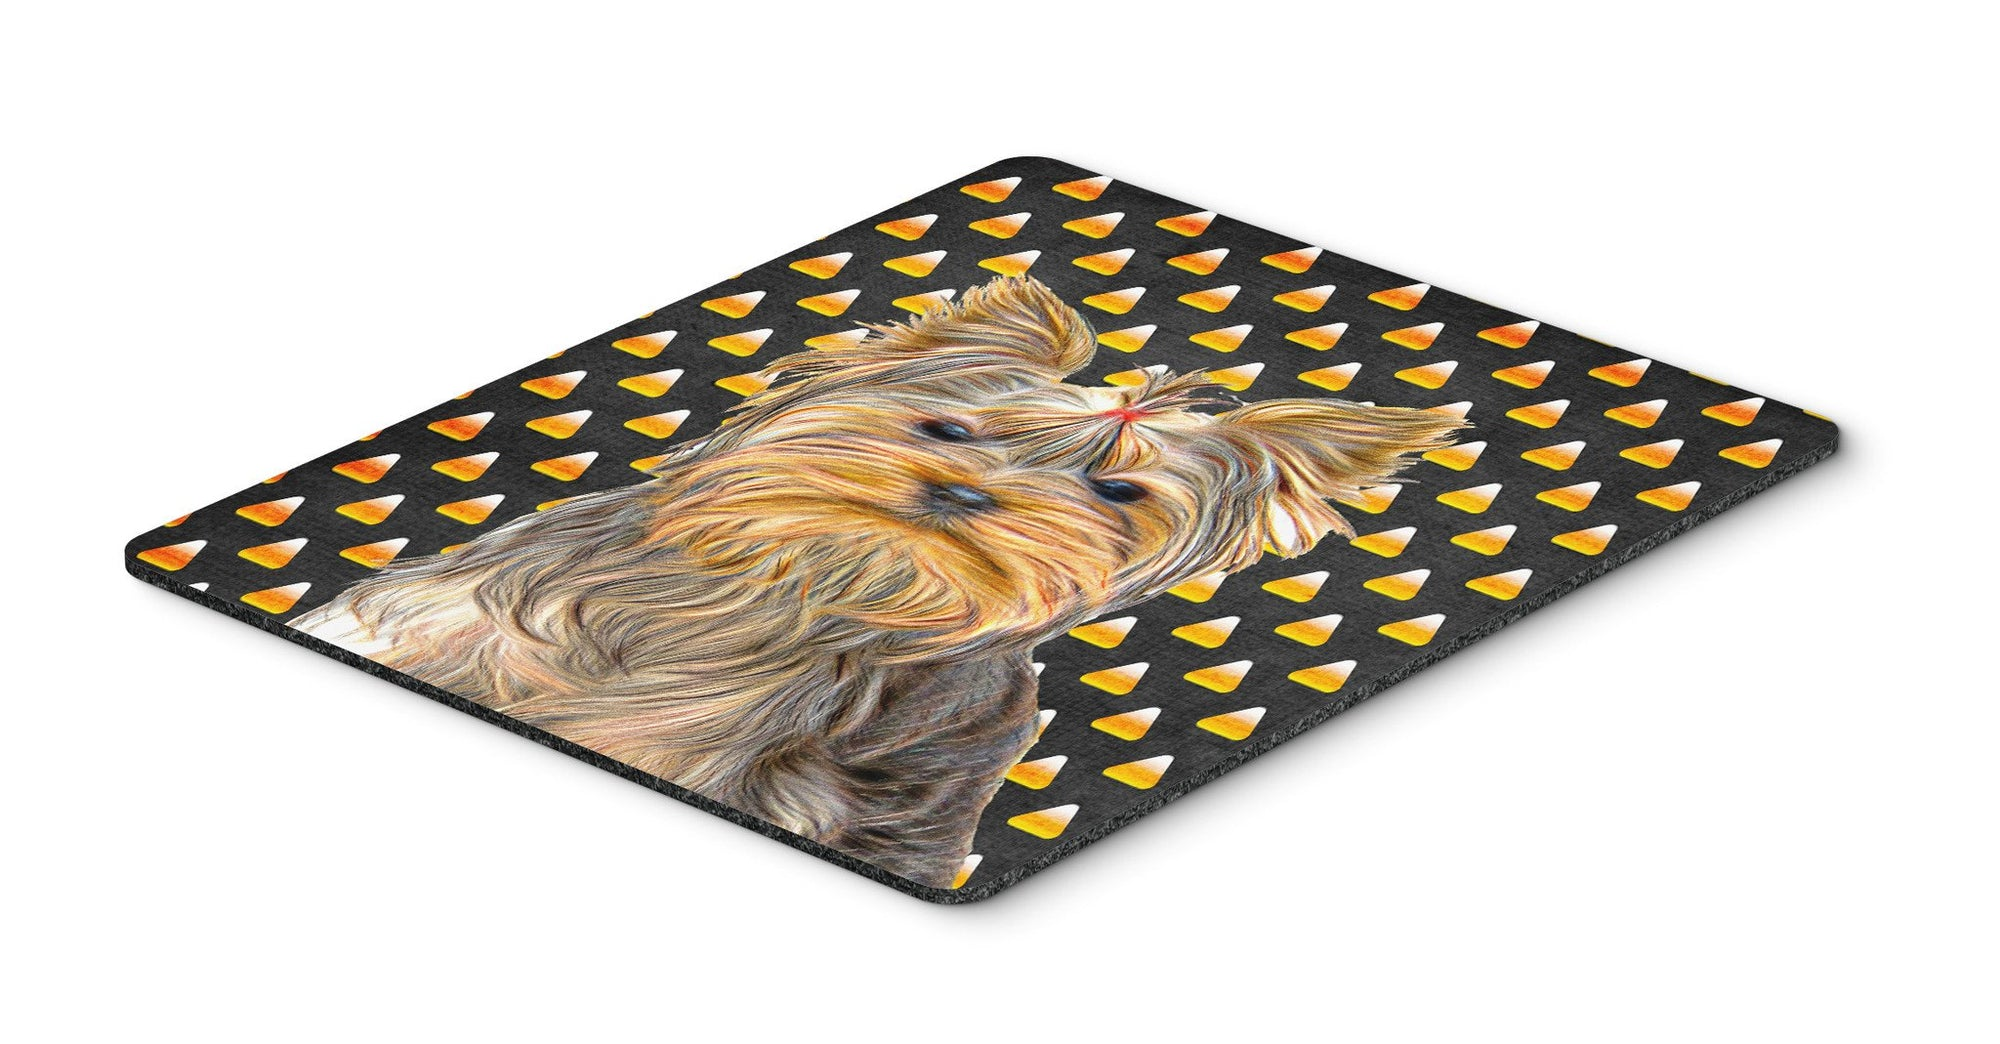 Buy this Candy Corn Halloween Yorkie / Yorkshire Terrier Mouse Pad, Hot Pad or Trivet KJ1212MP